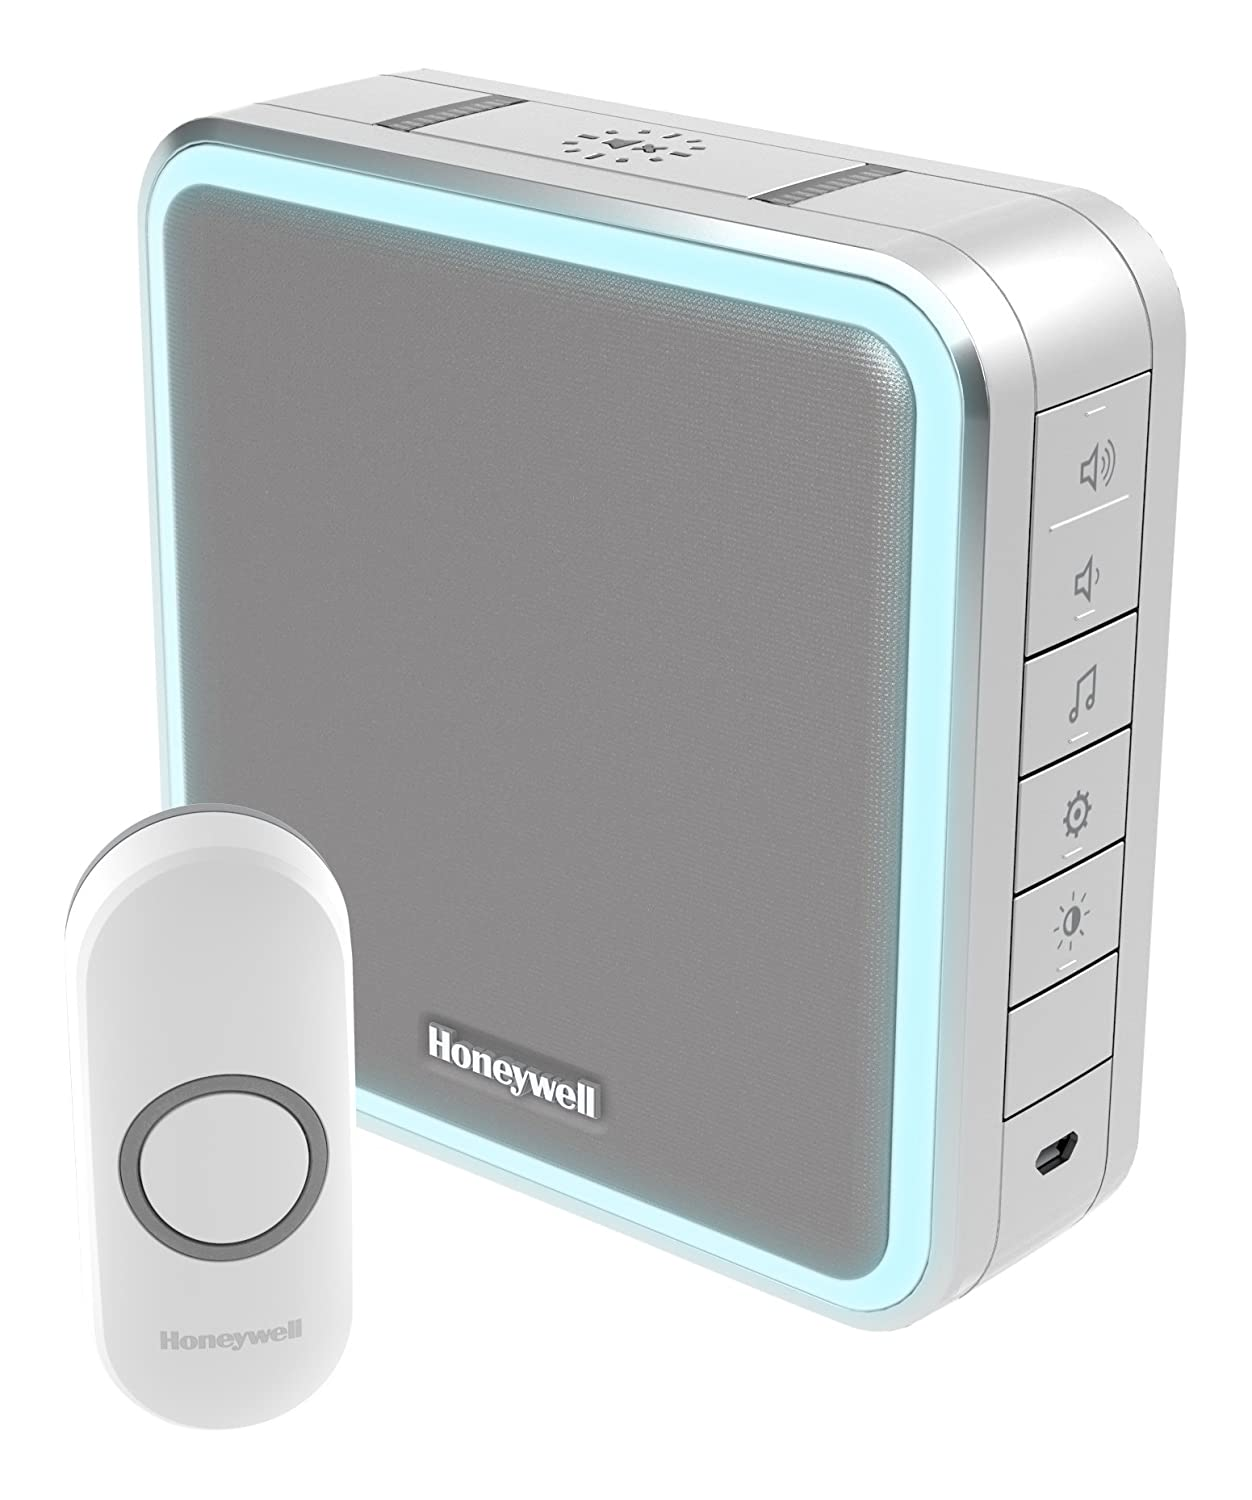 Honeywell DC915NG 200 m 9 Series LED Doorbell - Grey